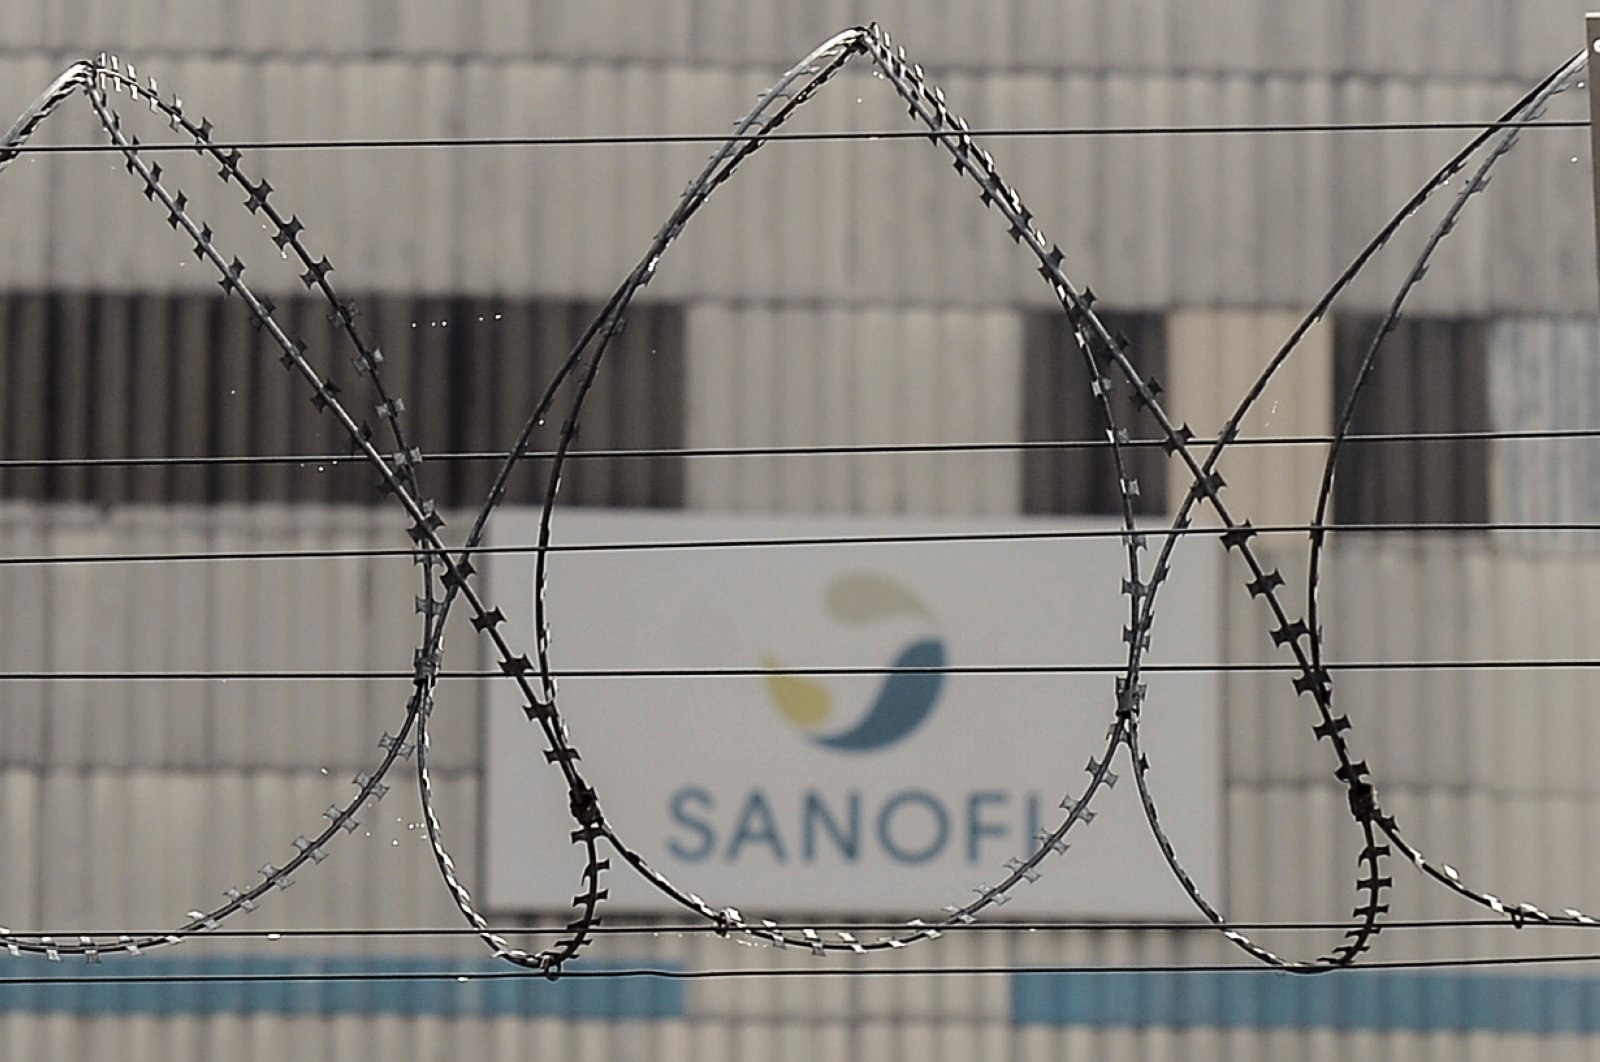 This factory of French pharmaceutical company Sanofi at Mourenx, in southwestern France is implicated in the manufacture of the drug valproate (Depakine), Oct.16, 2018. (AFP Photo)